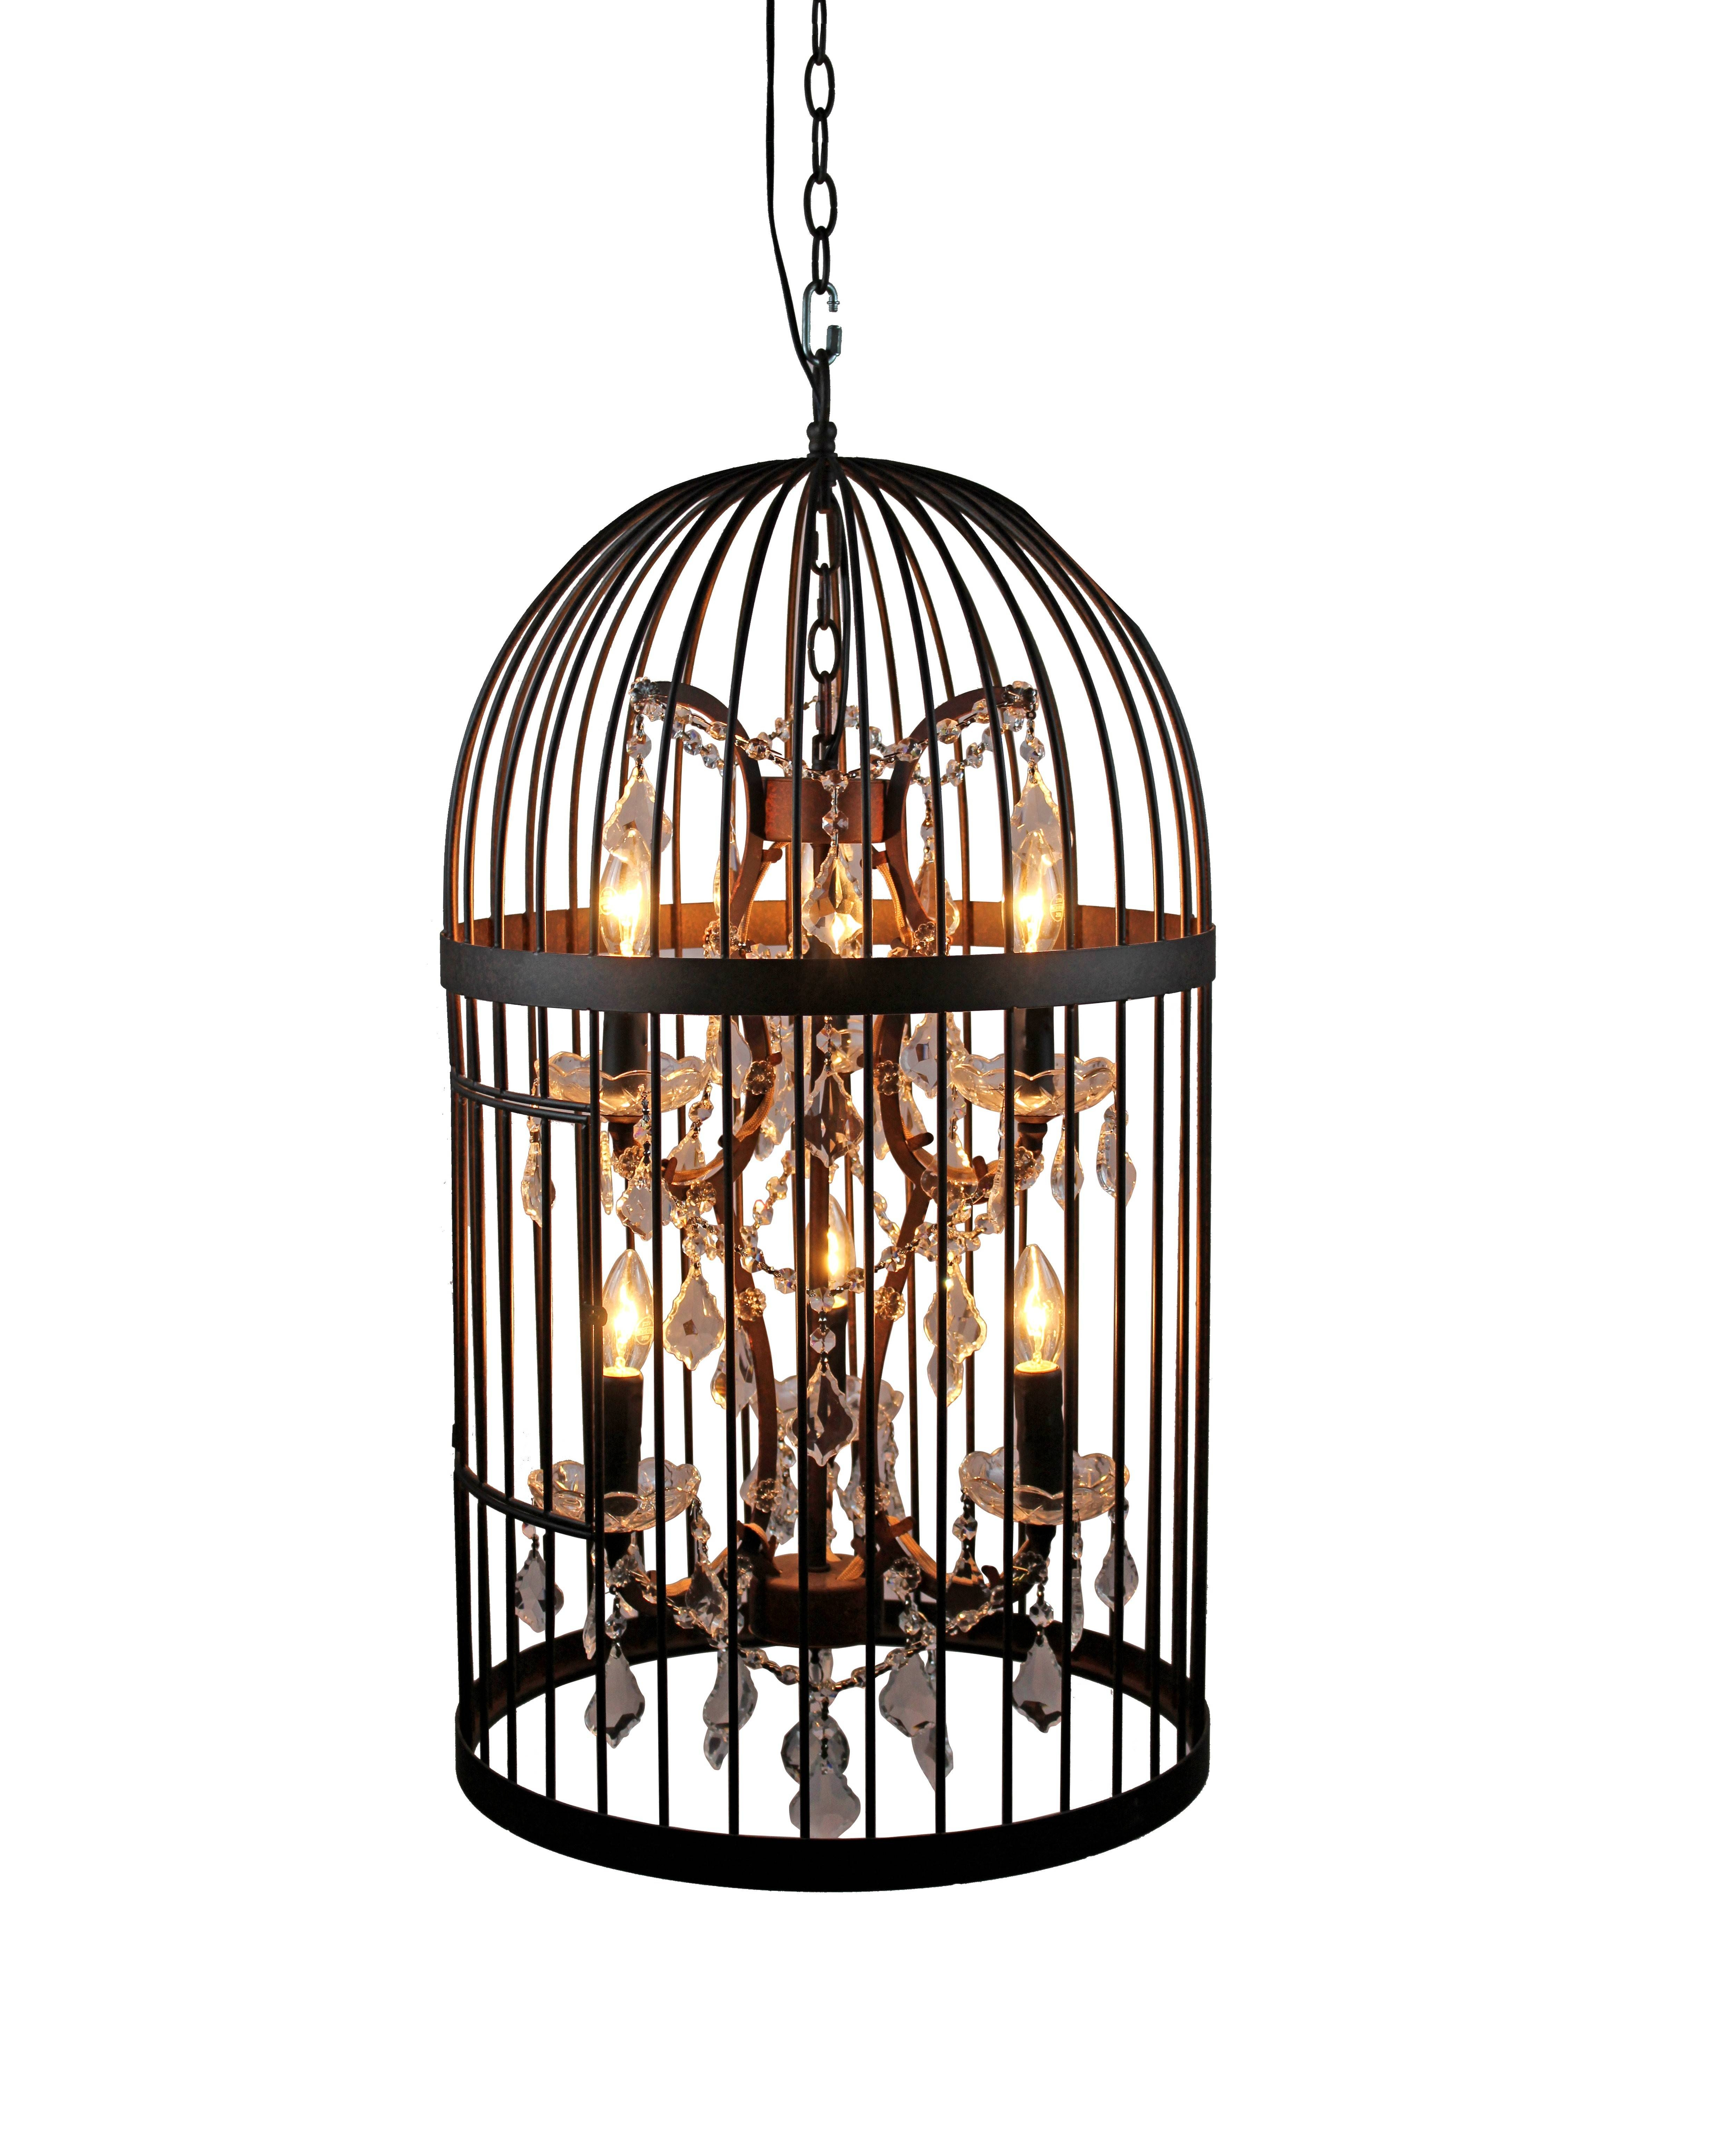 Vintage Industrial Bird Cage Pendant Light With Crystal Ornaments In Birdcage Pendant Lights (View 3 of 15)